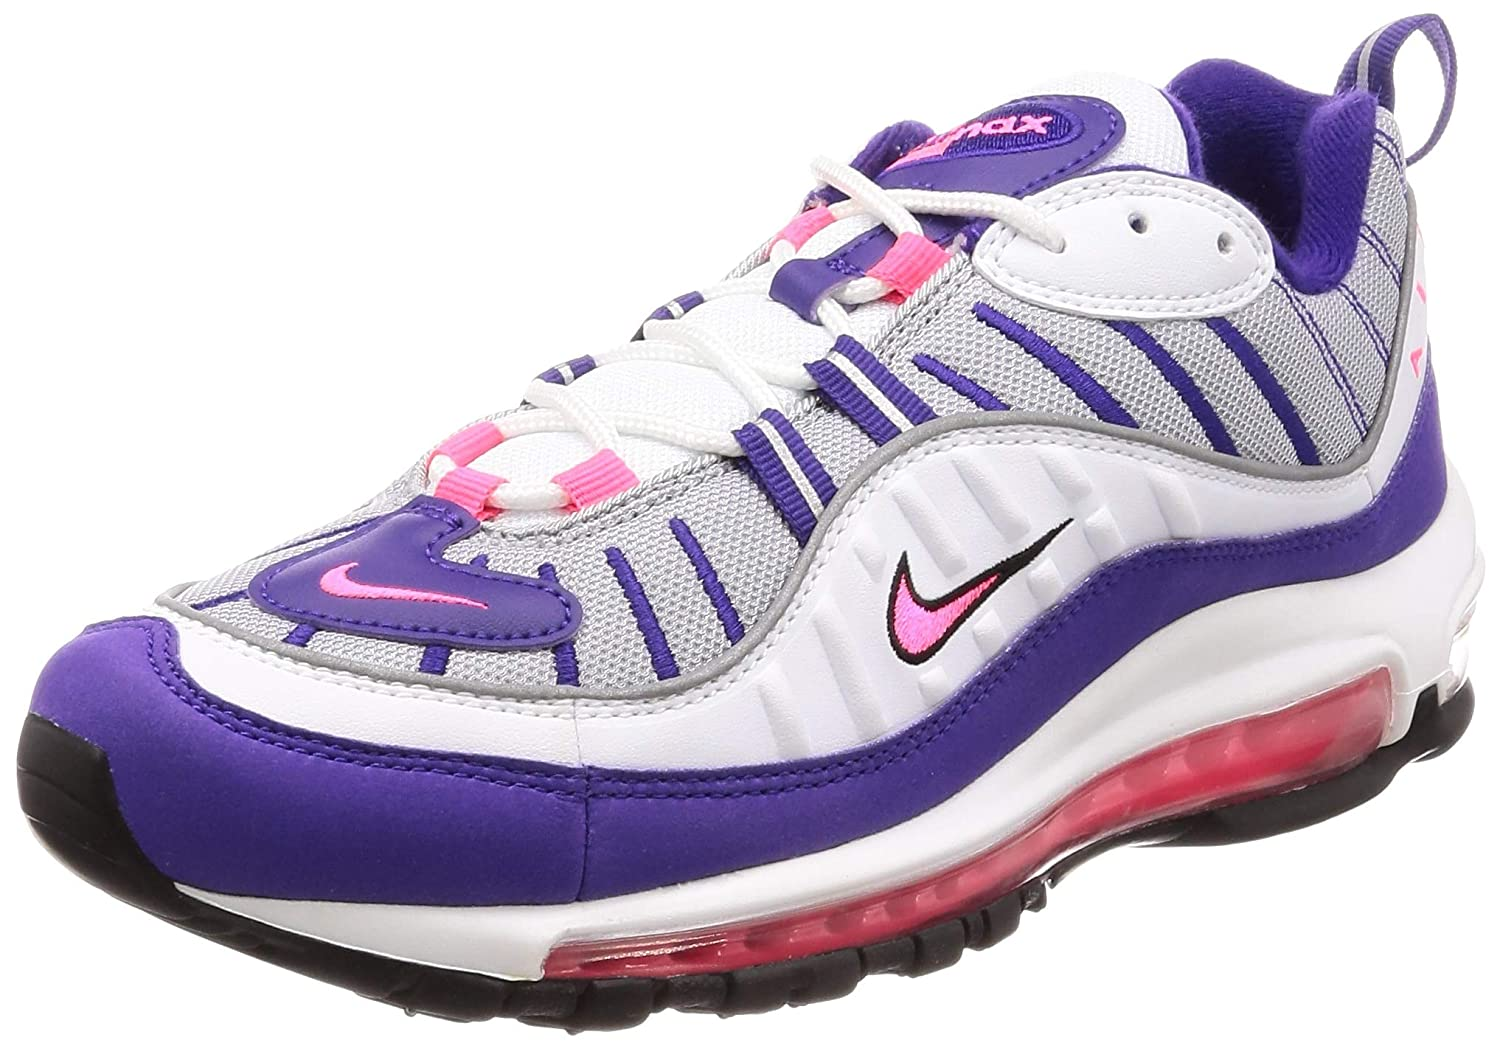 Nike Air Max 98 Women's Shoes WhiteRacer Pink ah6799 110